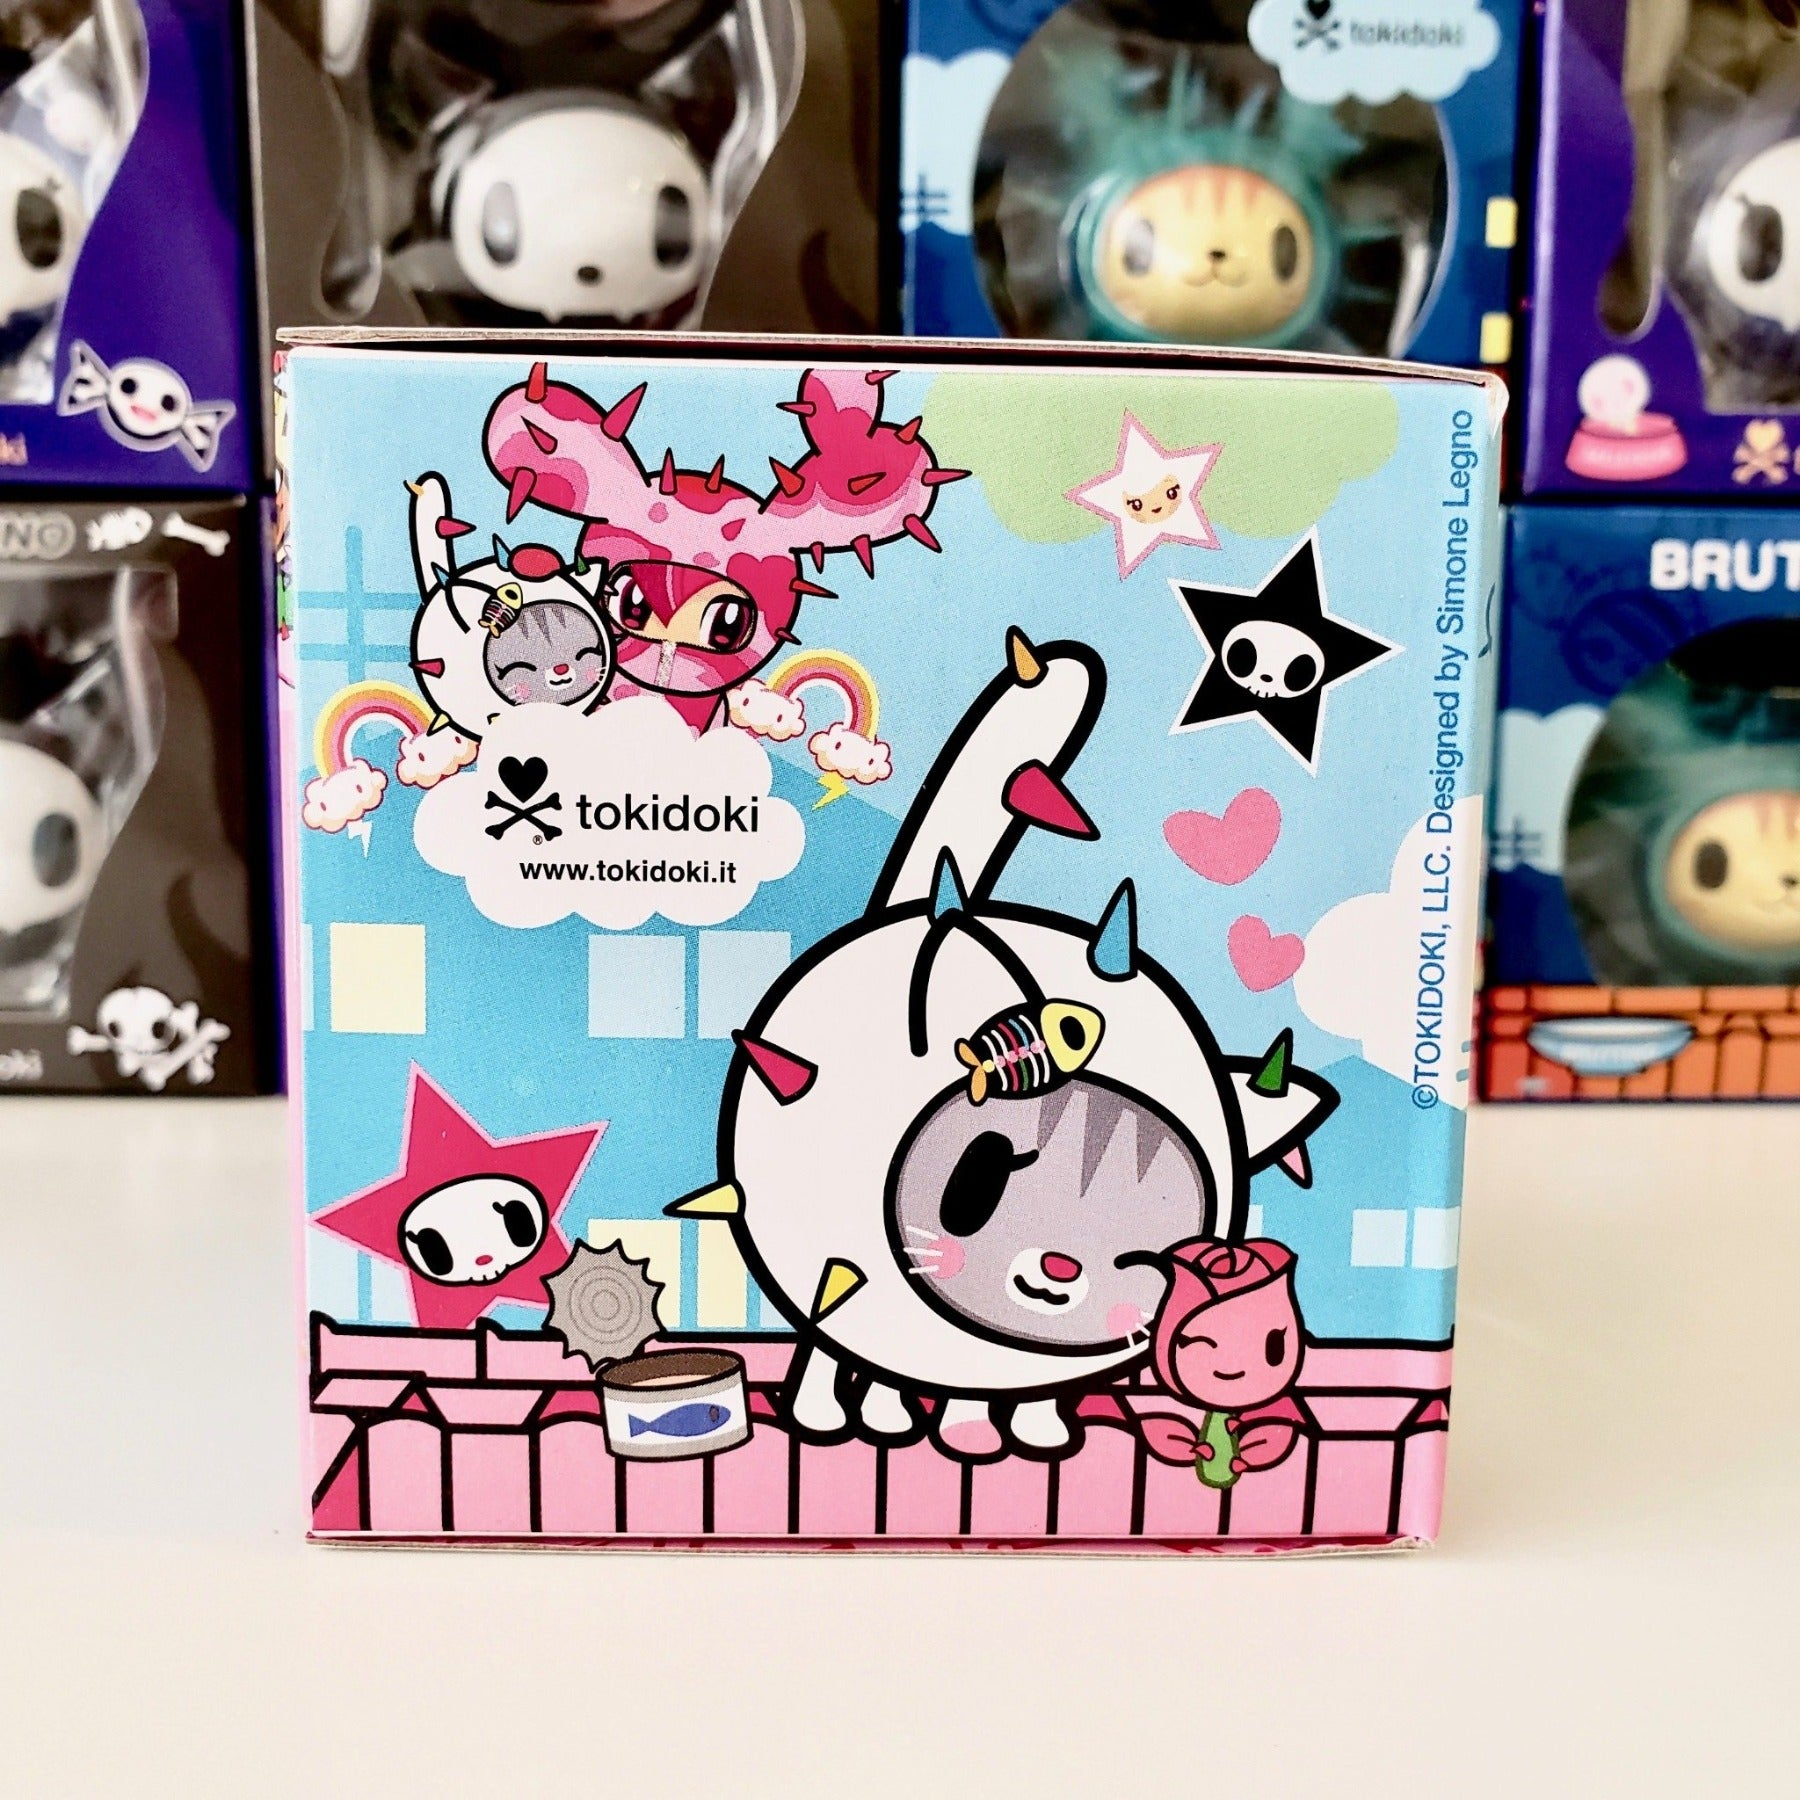 tokidoki vinyl figure cactus friends carina (package side view)